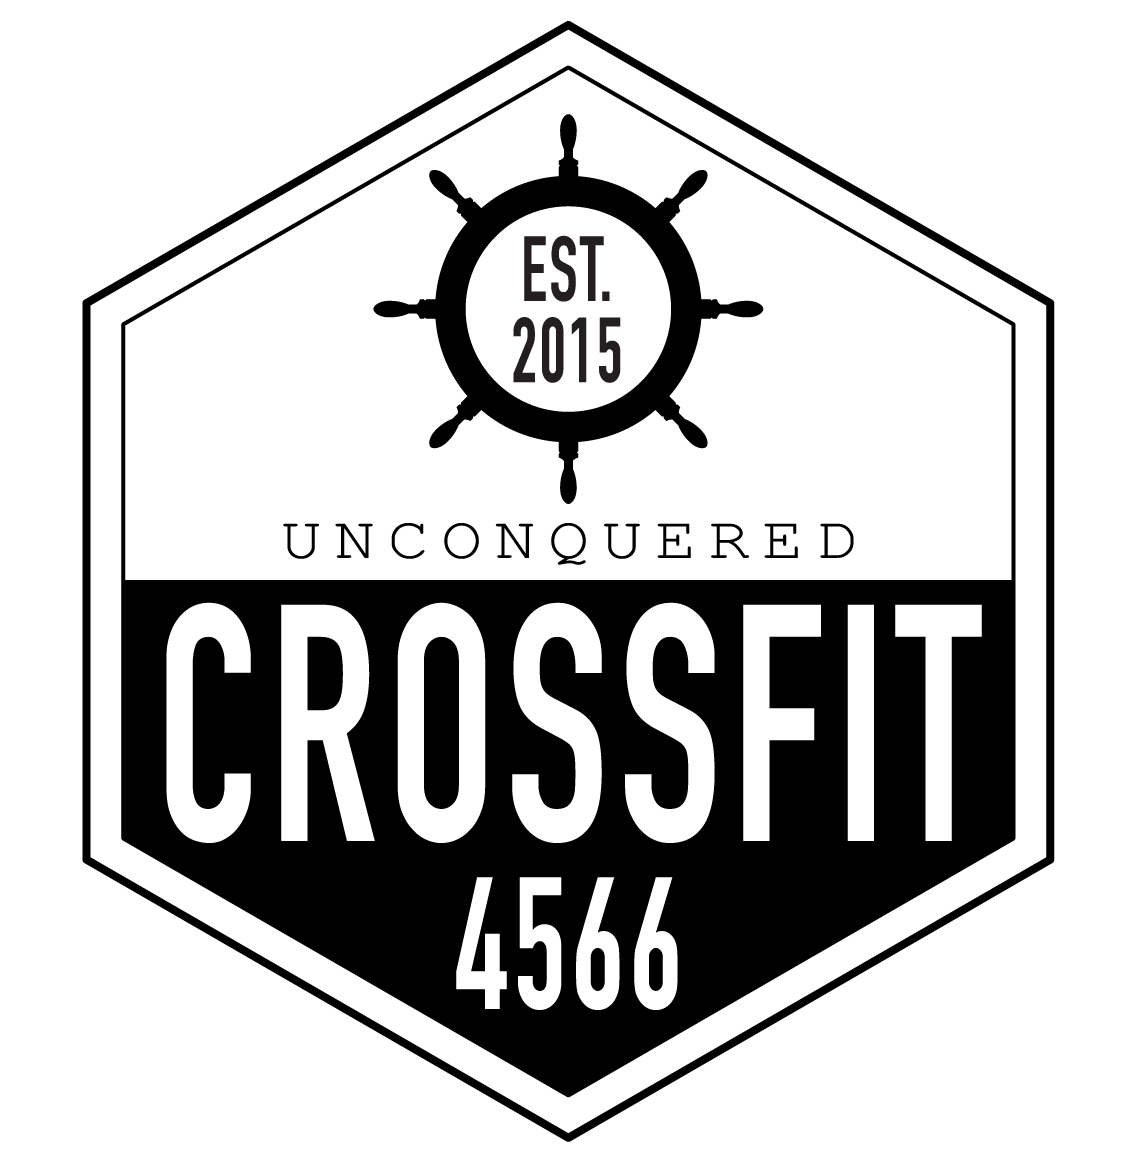 CrossFit 4566 Contact us